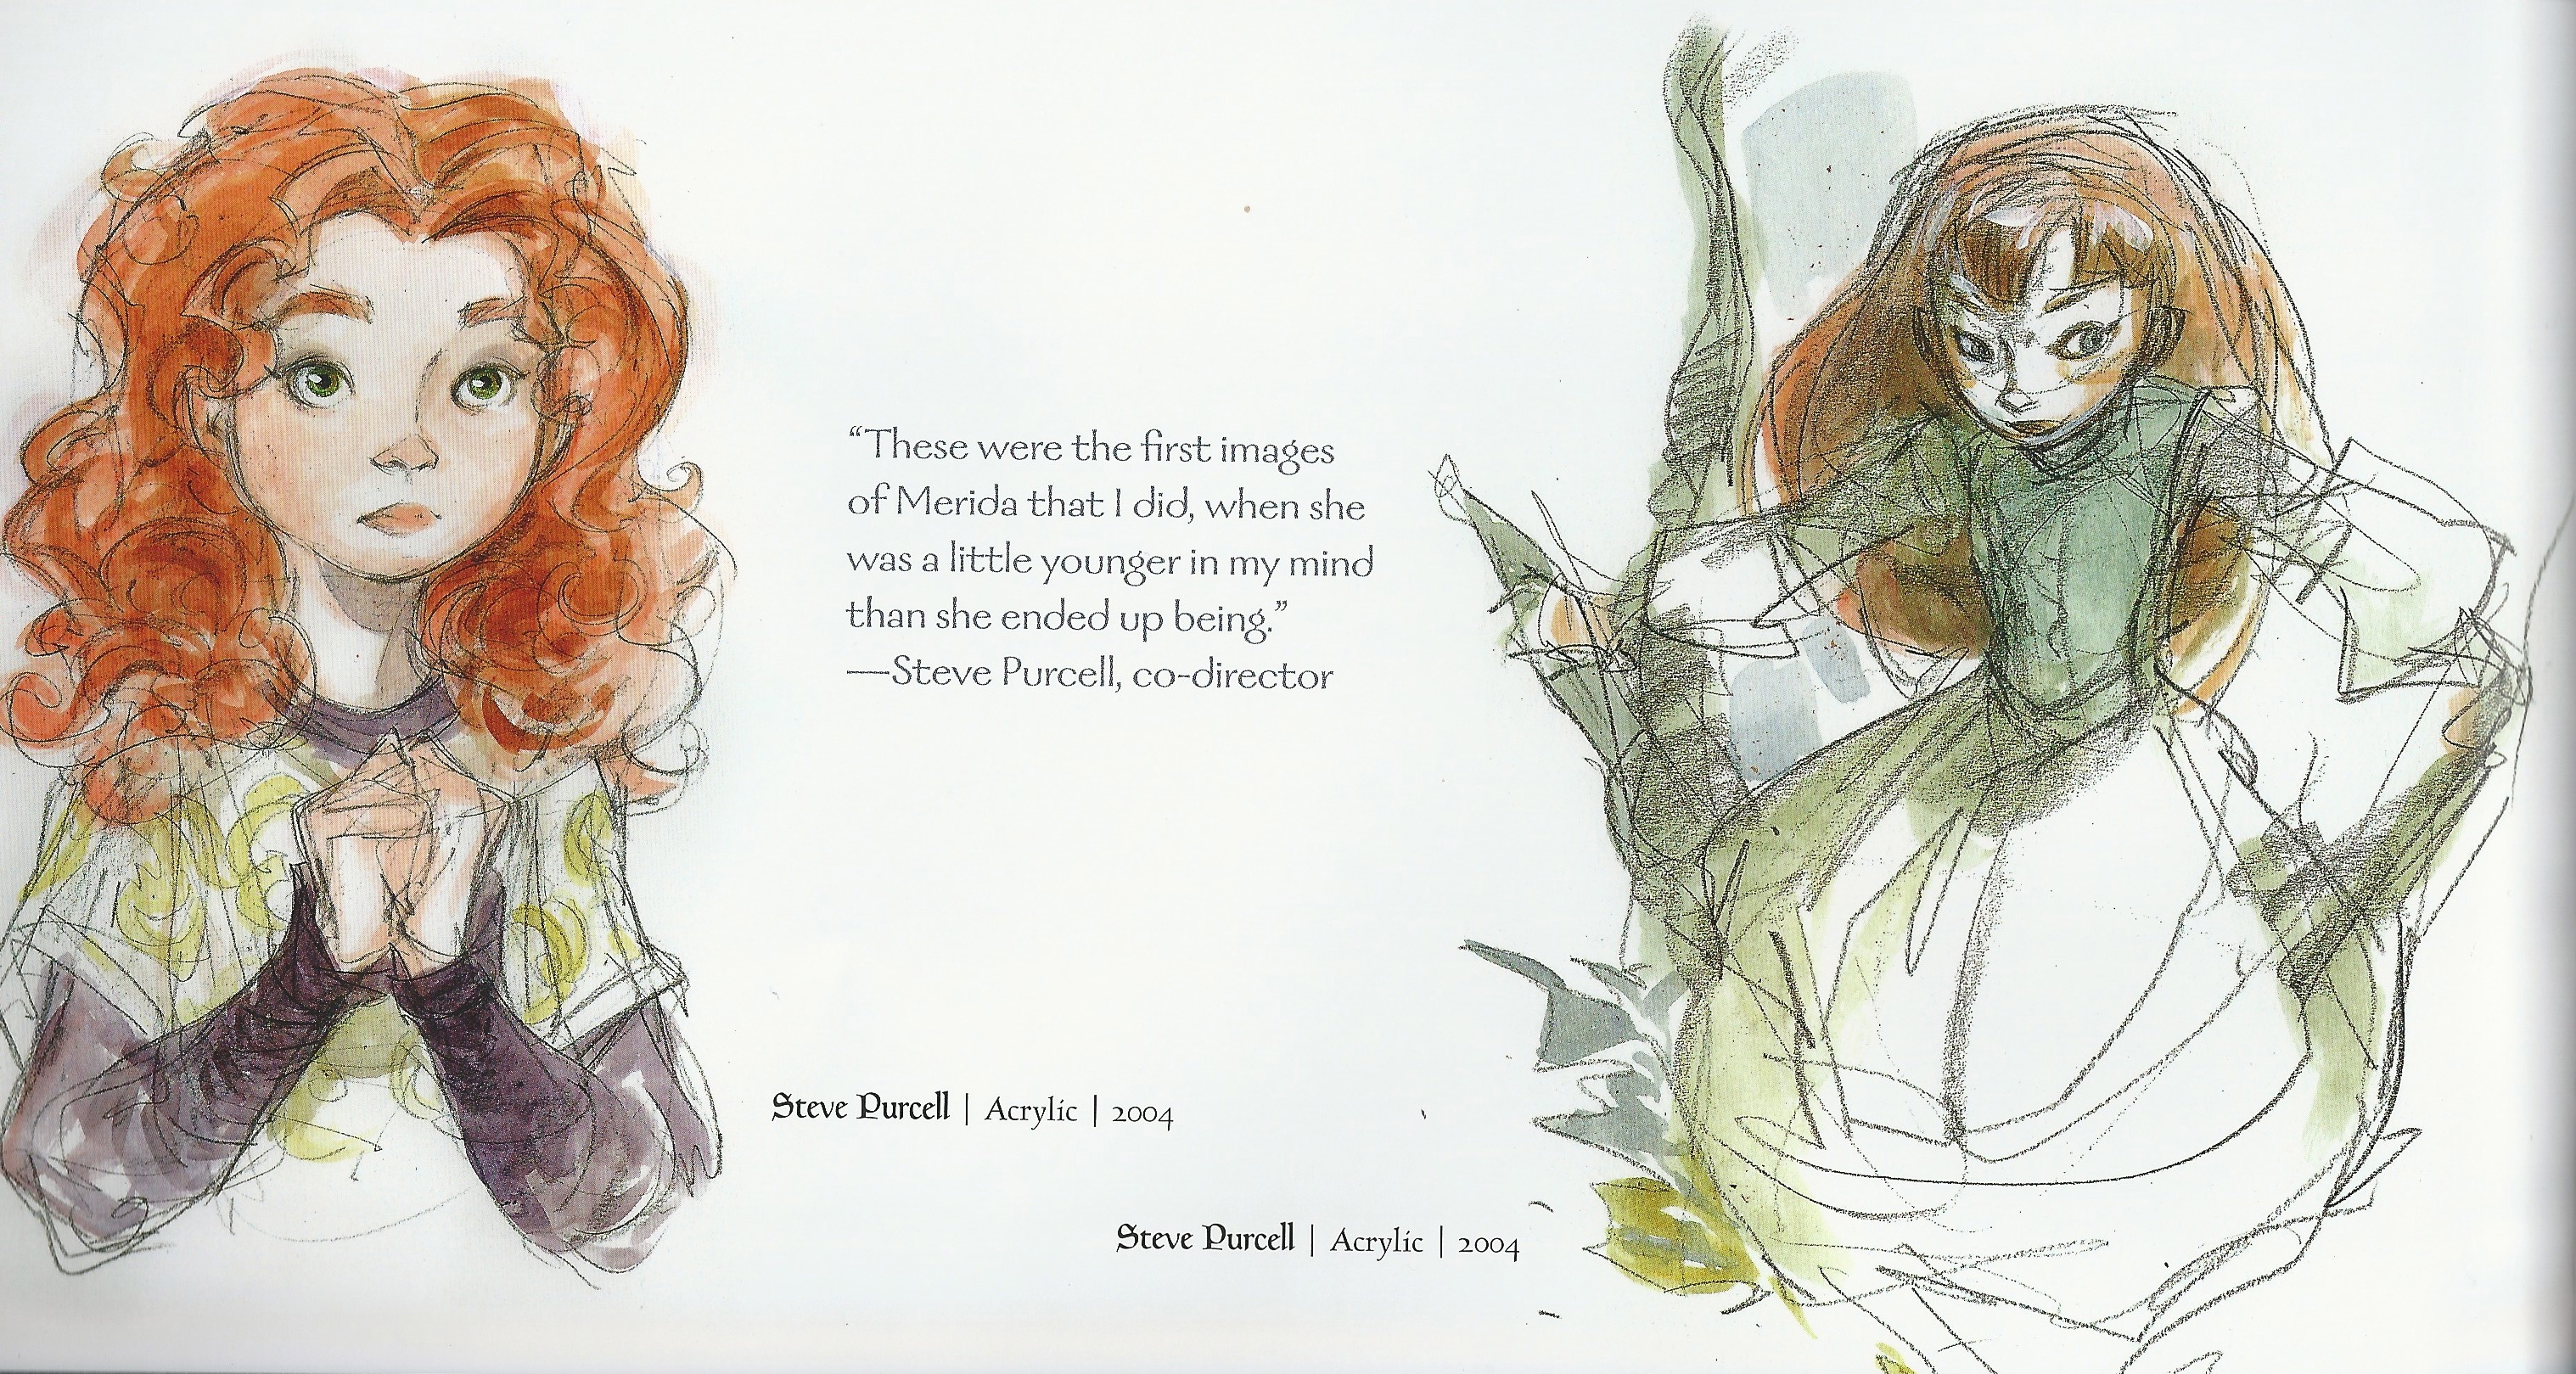 Brave Images The Art Of Brave Merida Concept Arts Hd Wallpaper And